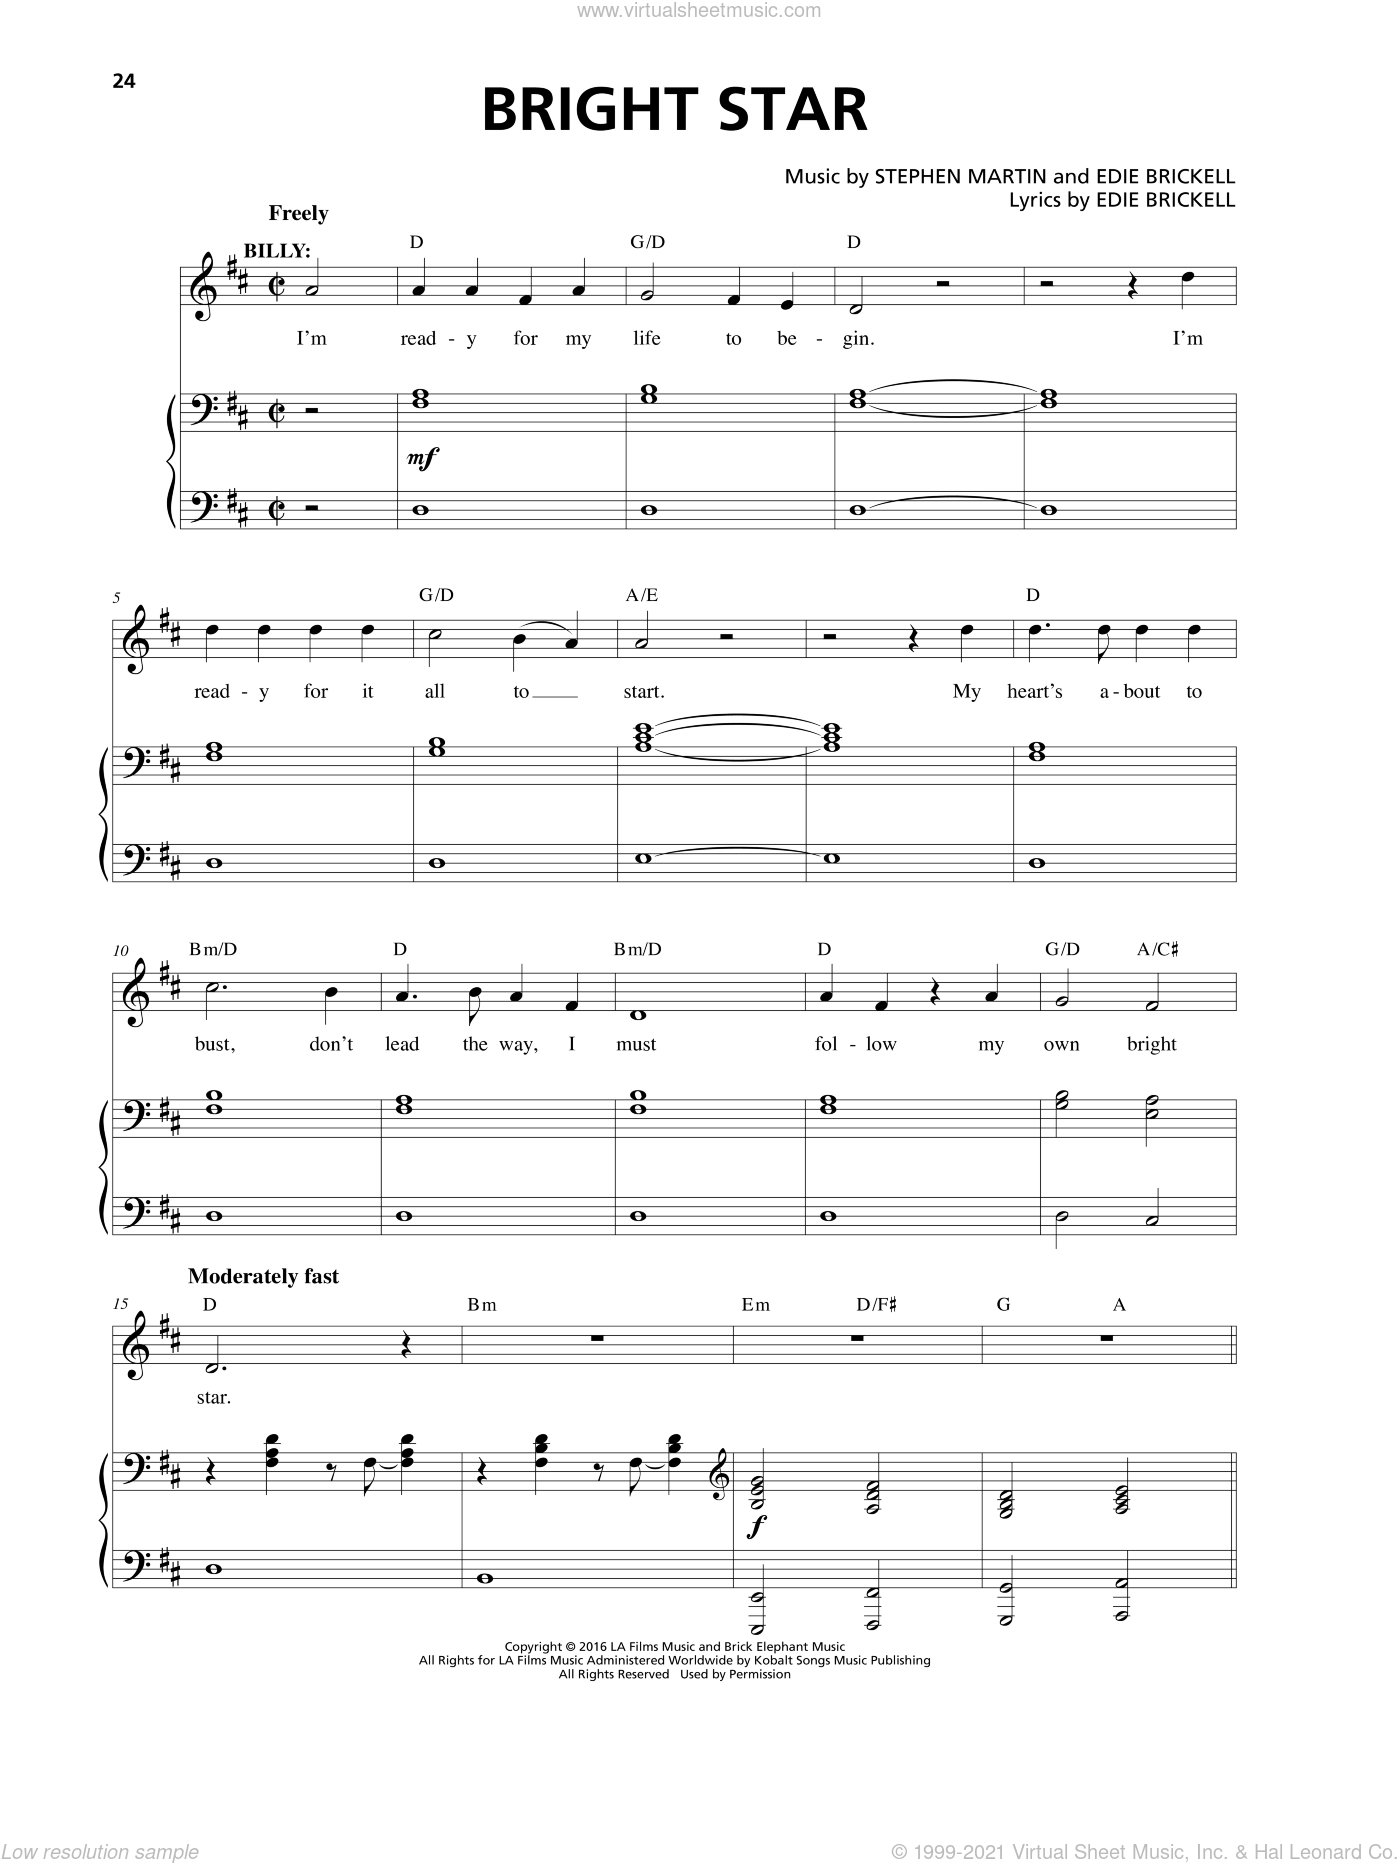 Bright Star sheet music for voice and piano by Stephen Martin